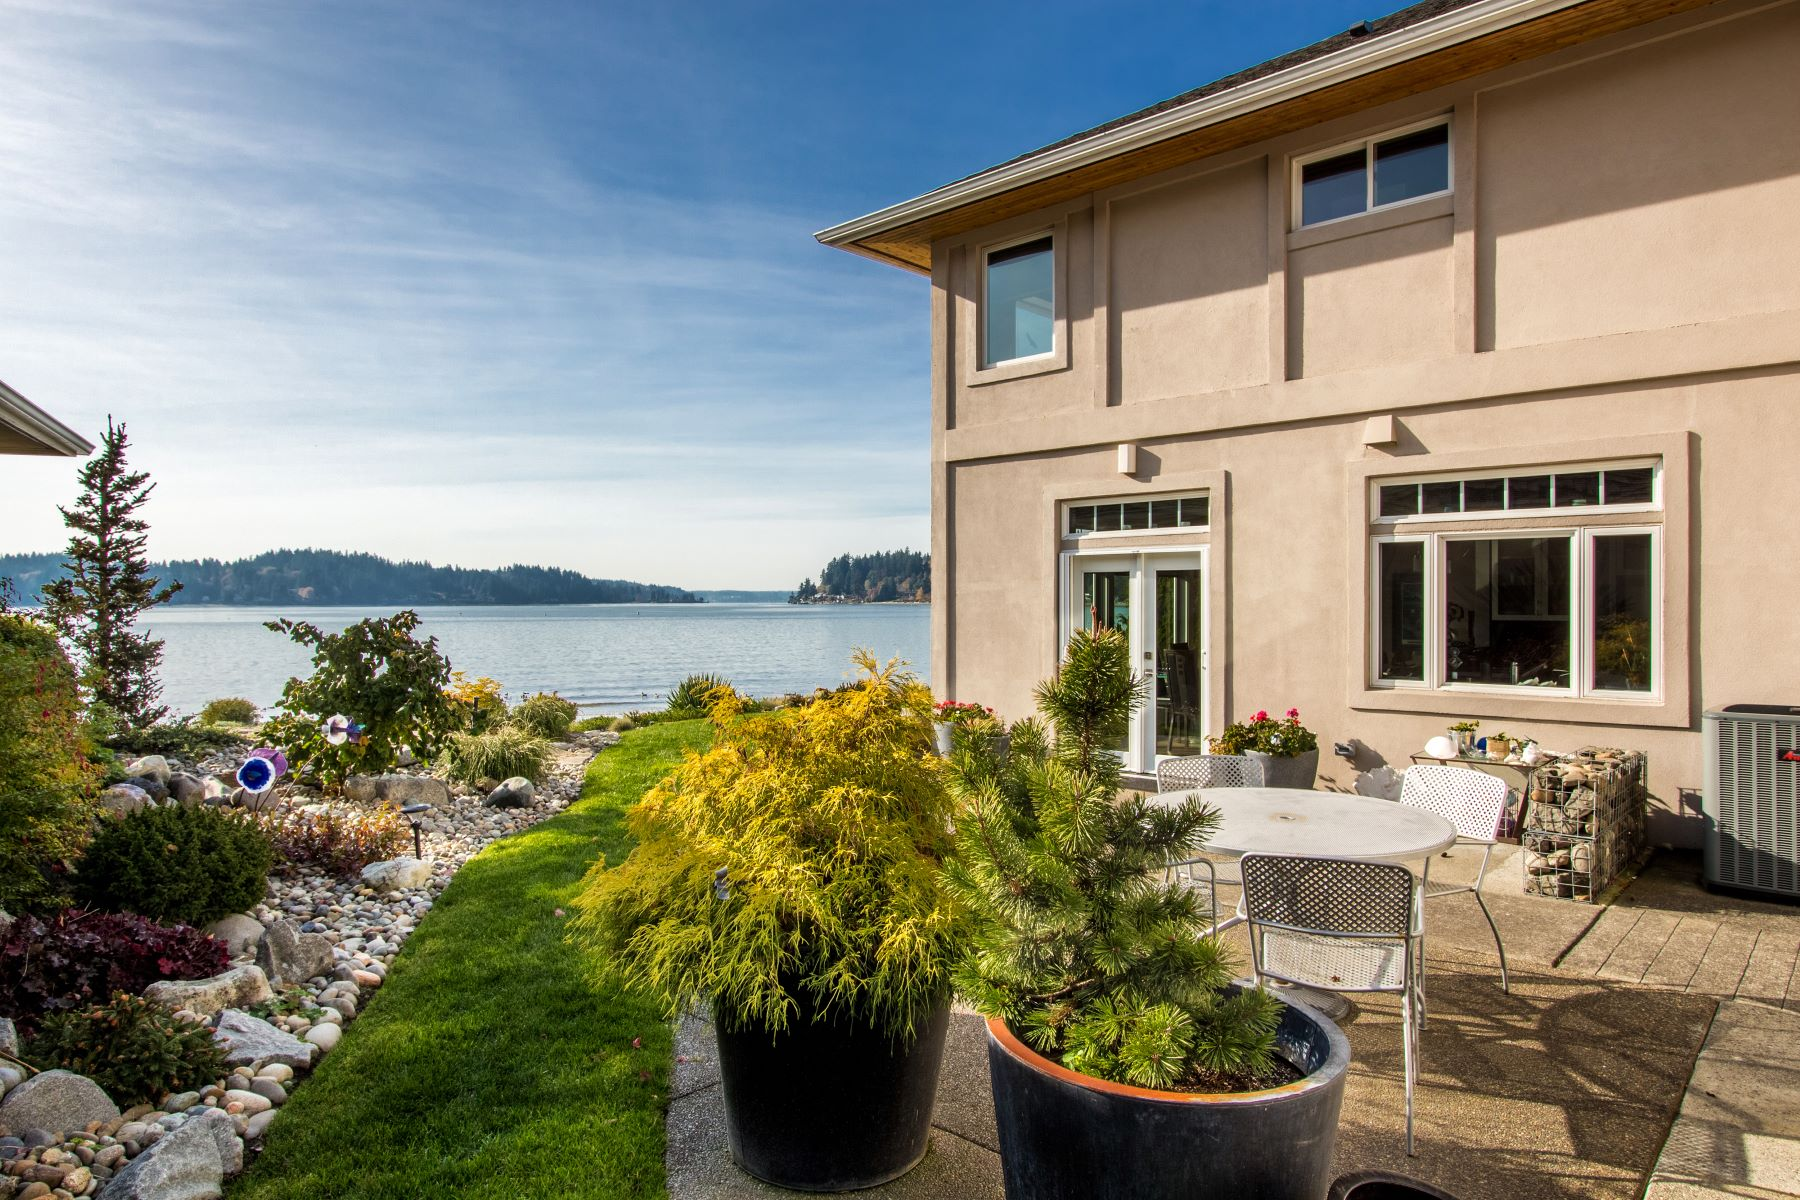 Condominiums for Sale at 4576 Point White Drive NE, Bainbridge Island, WA 98110 4576 Point White Drive NE Bainbridge Island, Washington 98110 United States